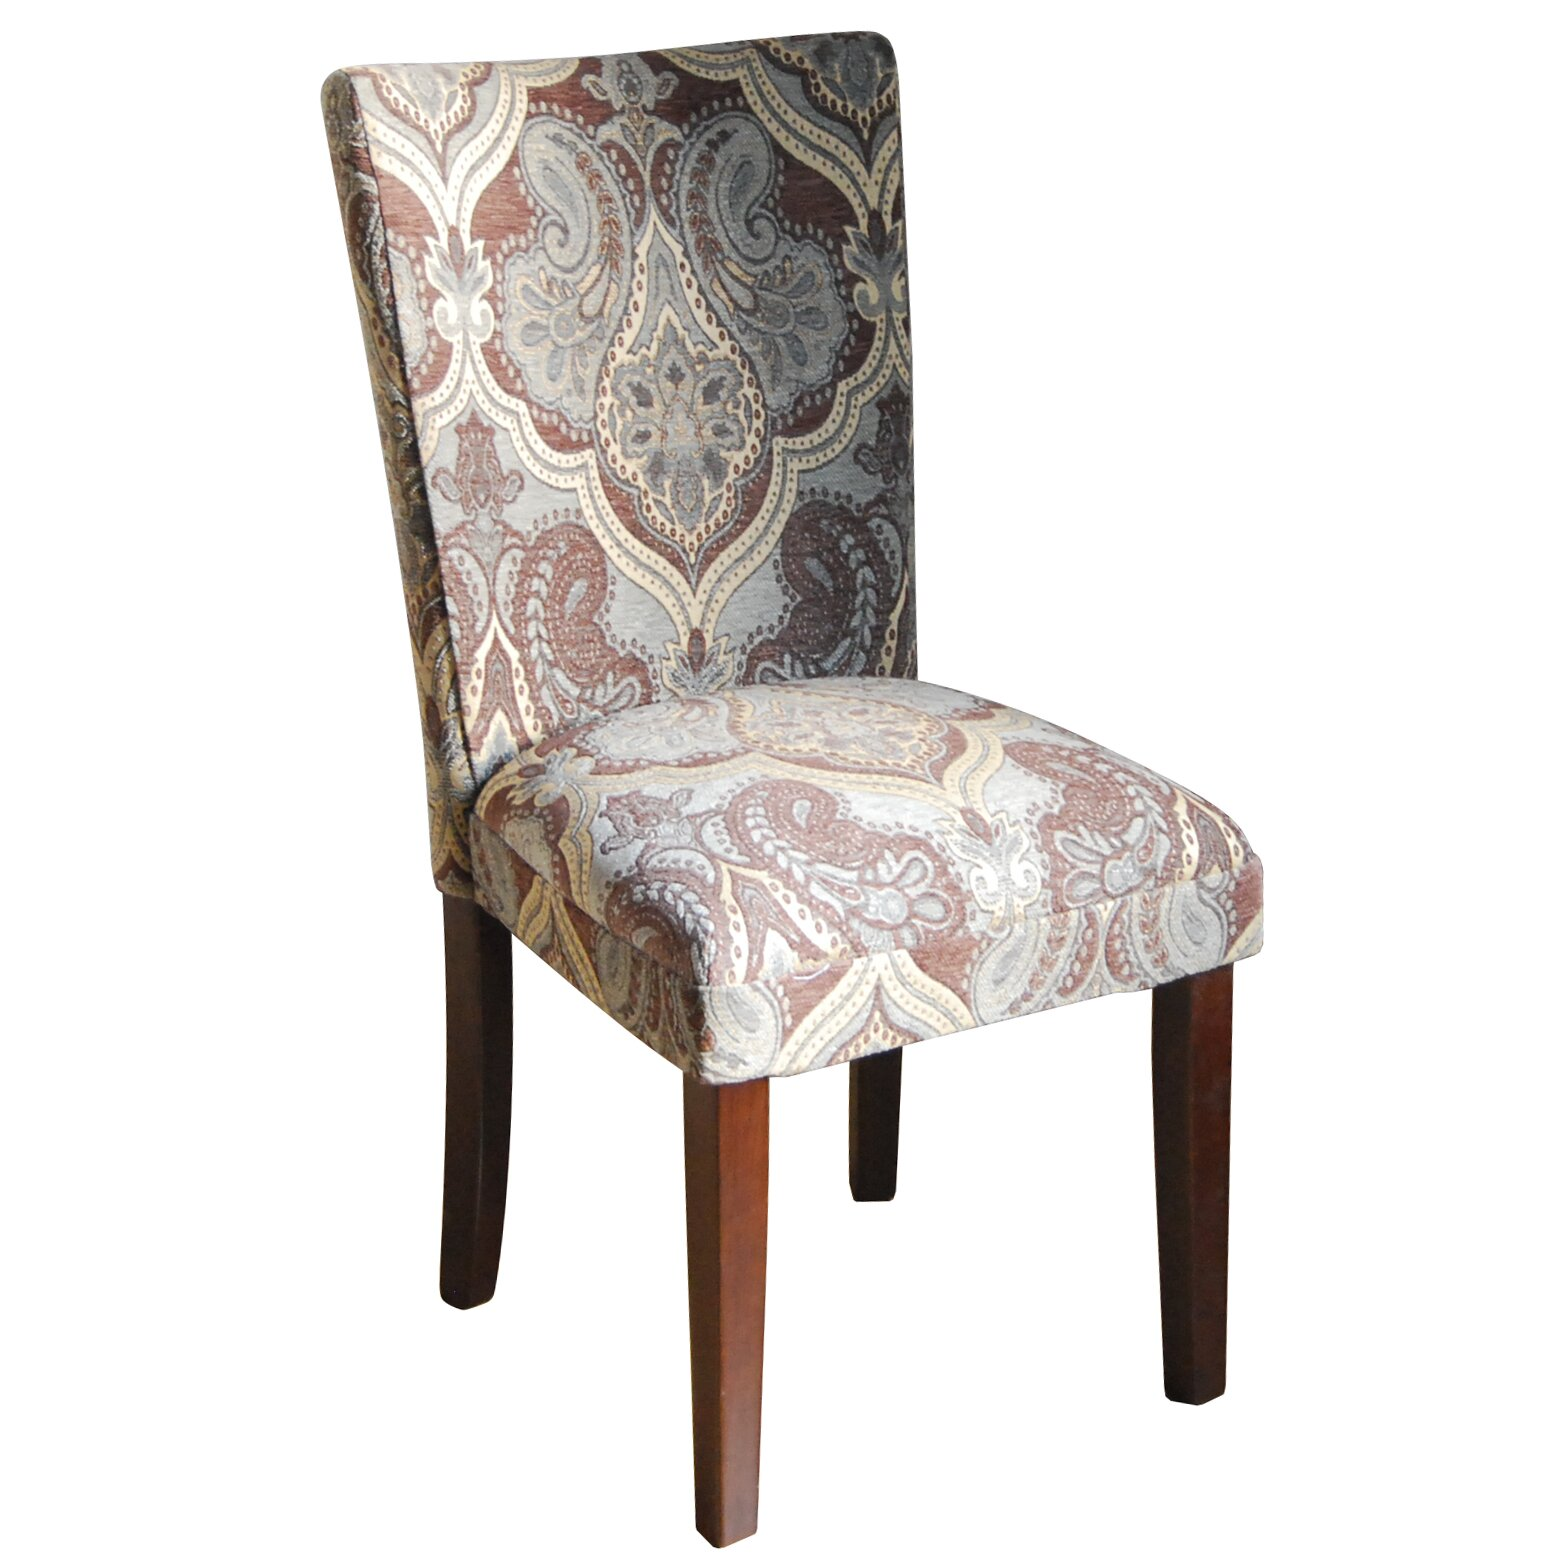 Homepop Kinfine Upholstered Damask Parsons Chair Amp Reviews